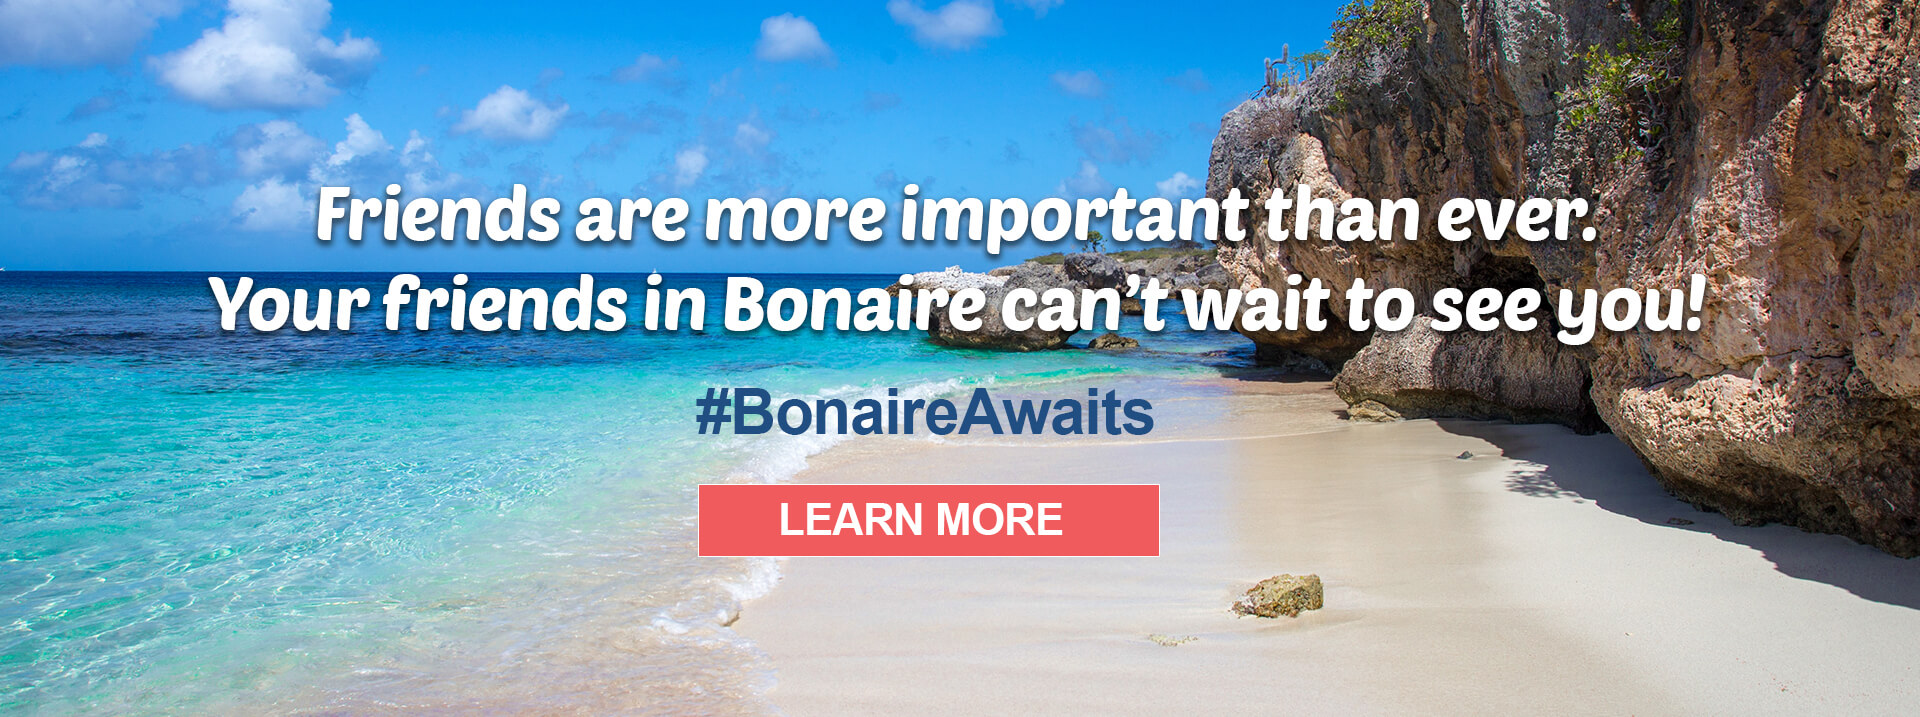 Friends are more important than ever. Your friends in Bonaire can't wait to see you.